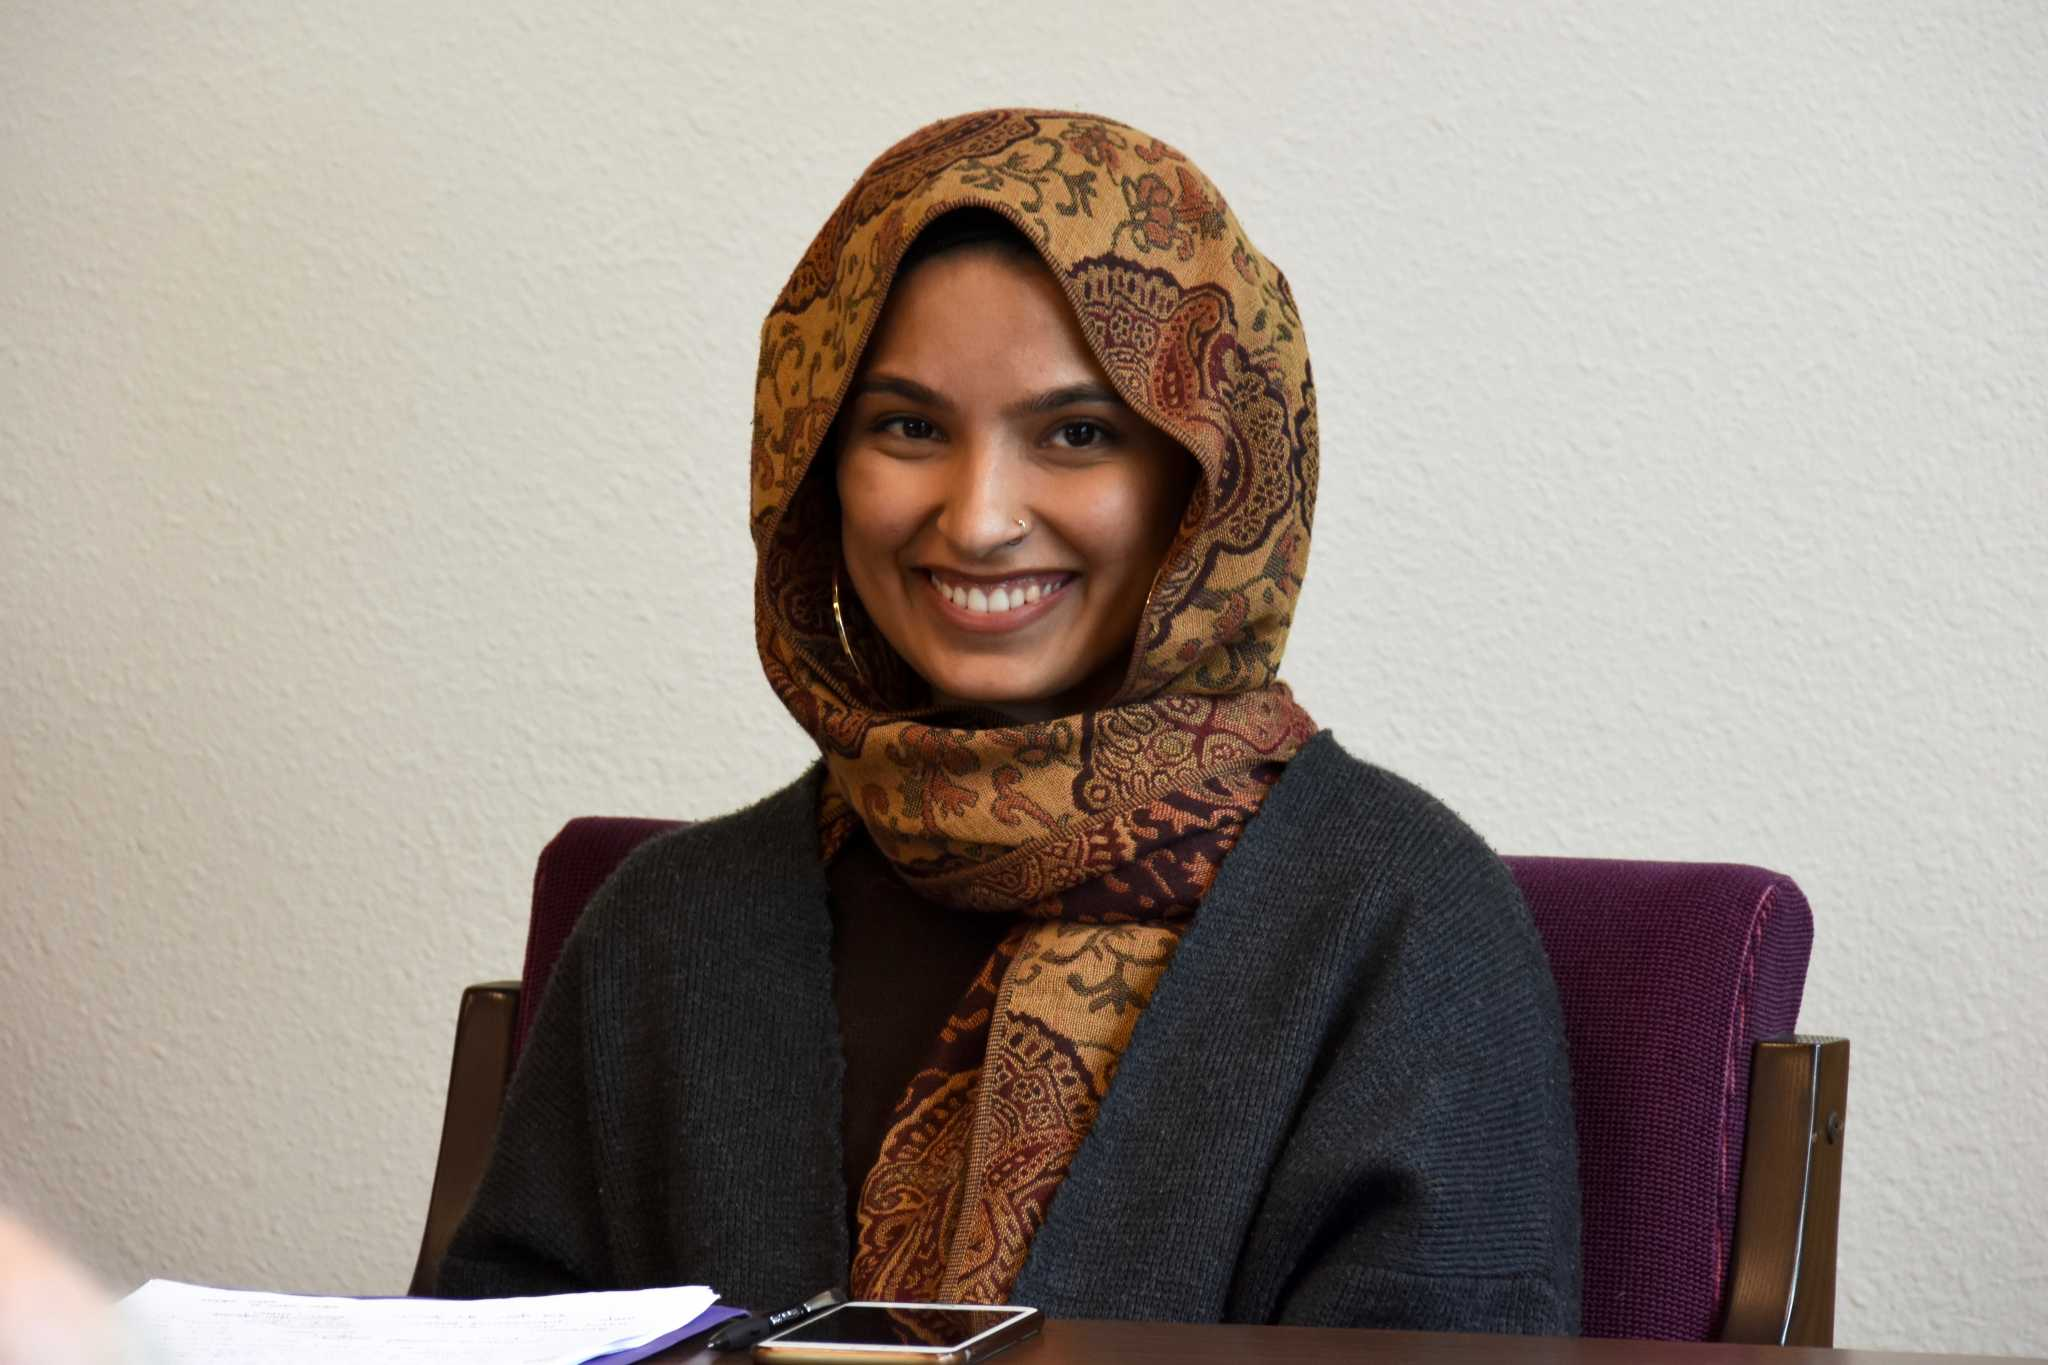 SF State student Maham Khan speaks at a student panel at SF State, regarding the political climate and support needed for Muslim students on April 6, 2017. (Tate Drucker/Xpress)